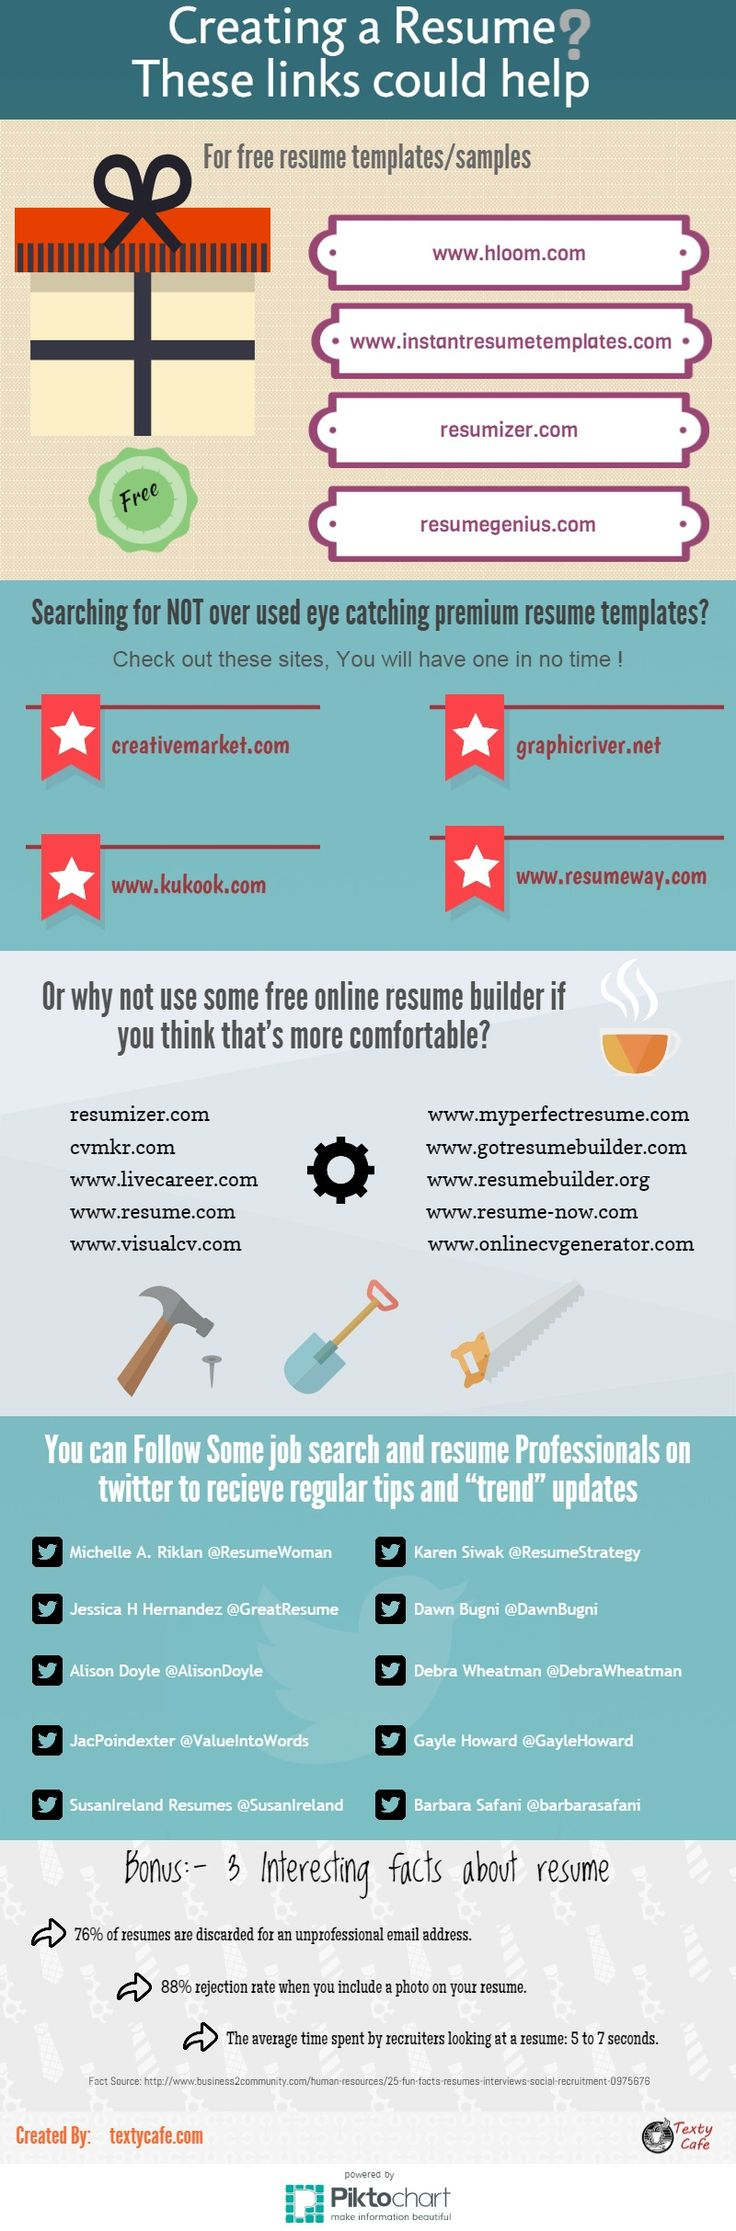 Best resume writing services nj for accountants